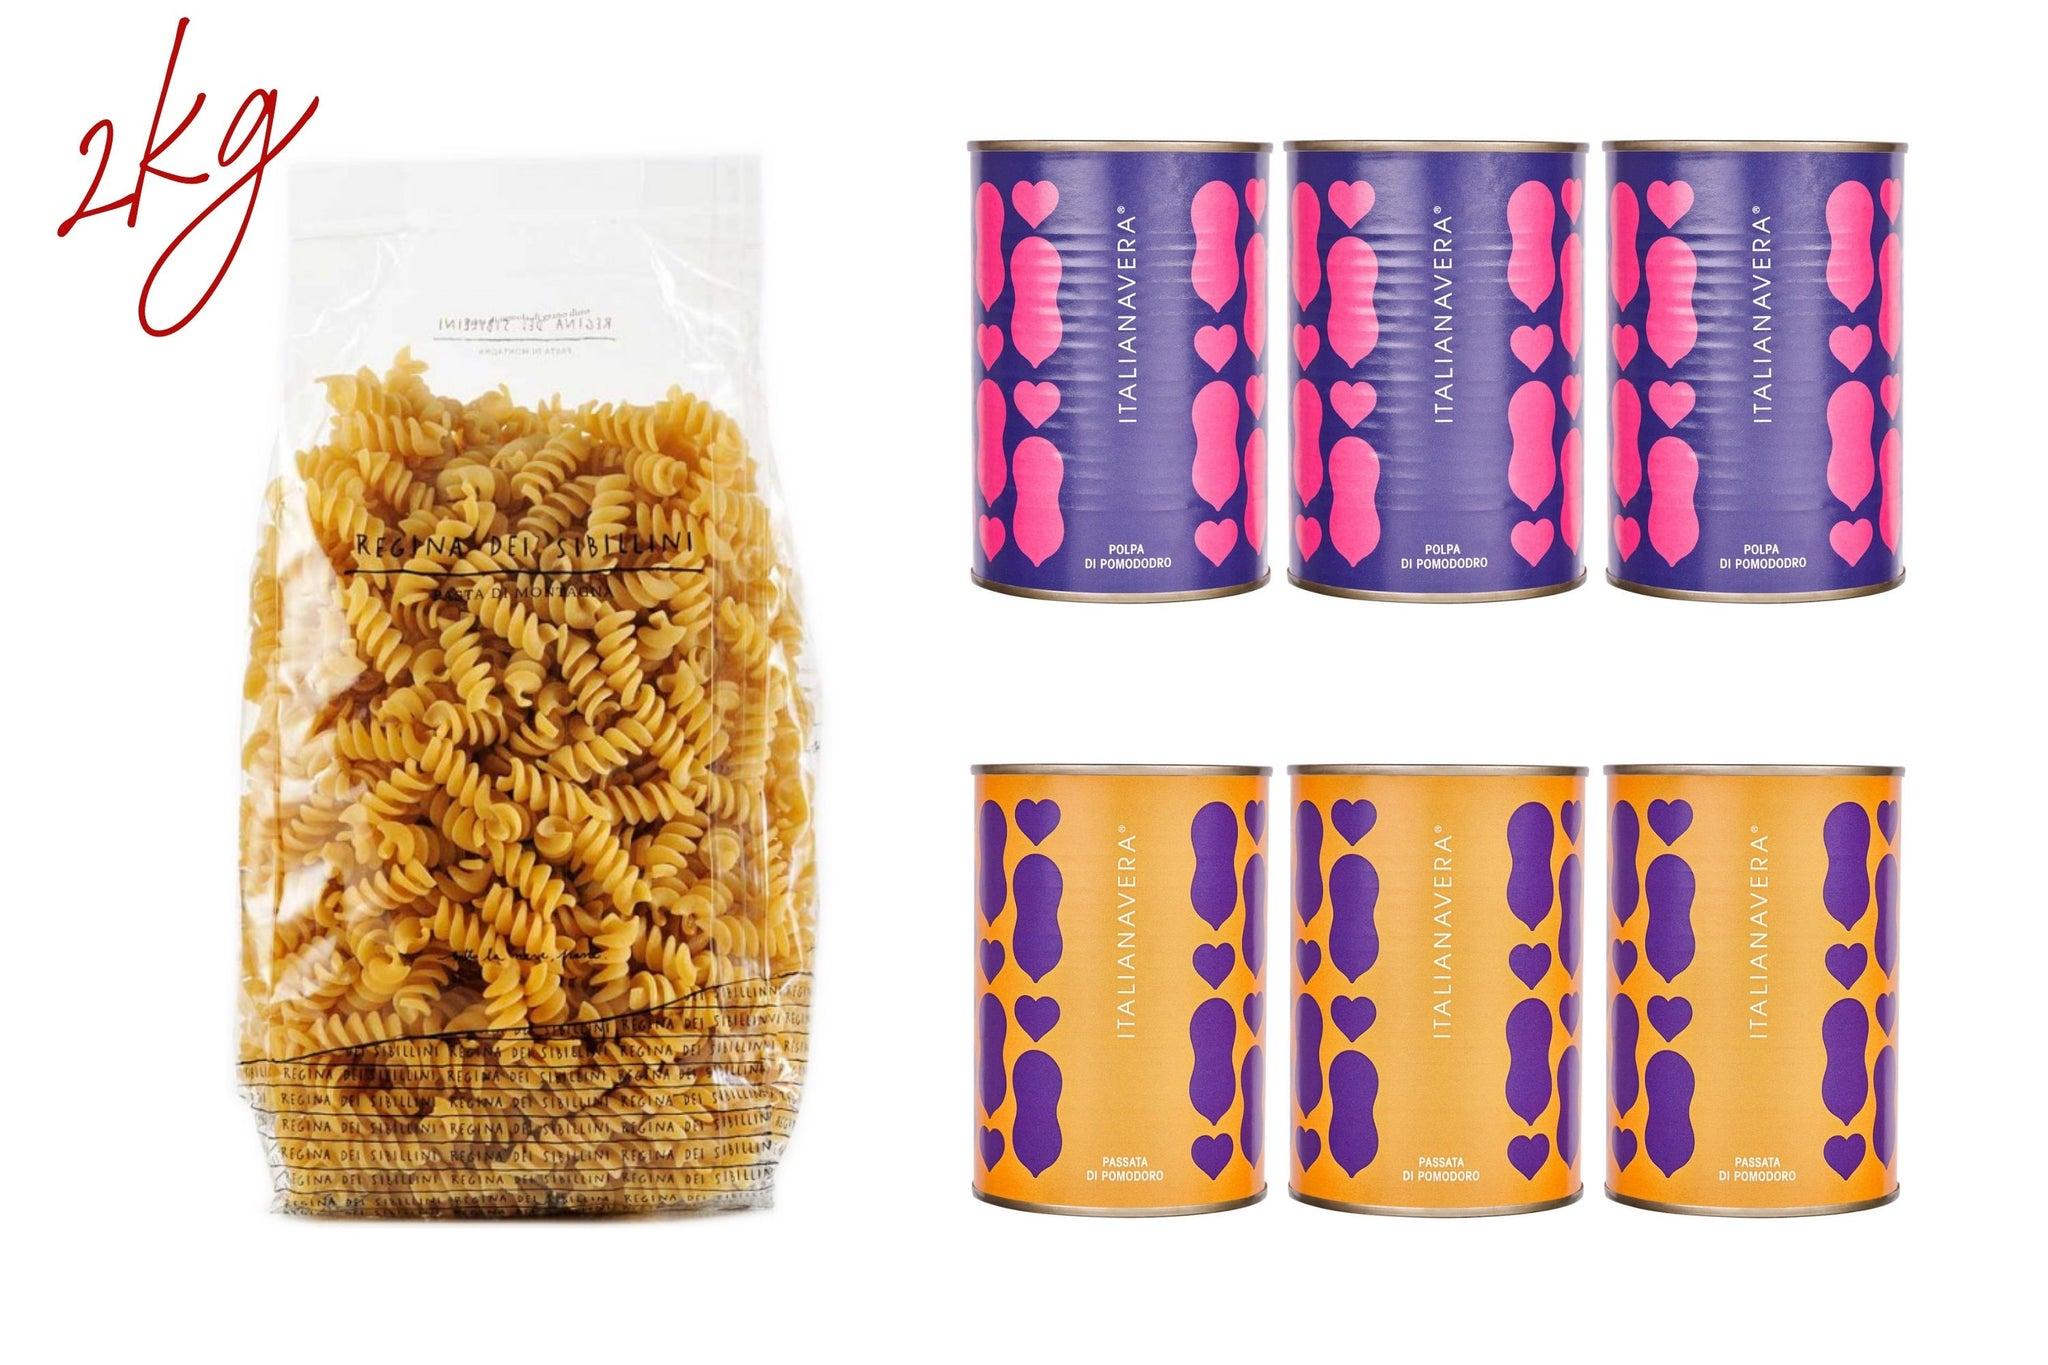 Mamma Pack. Pantry Essentials: Mountain Pasta & ItalianaVera Tomatoes